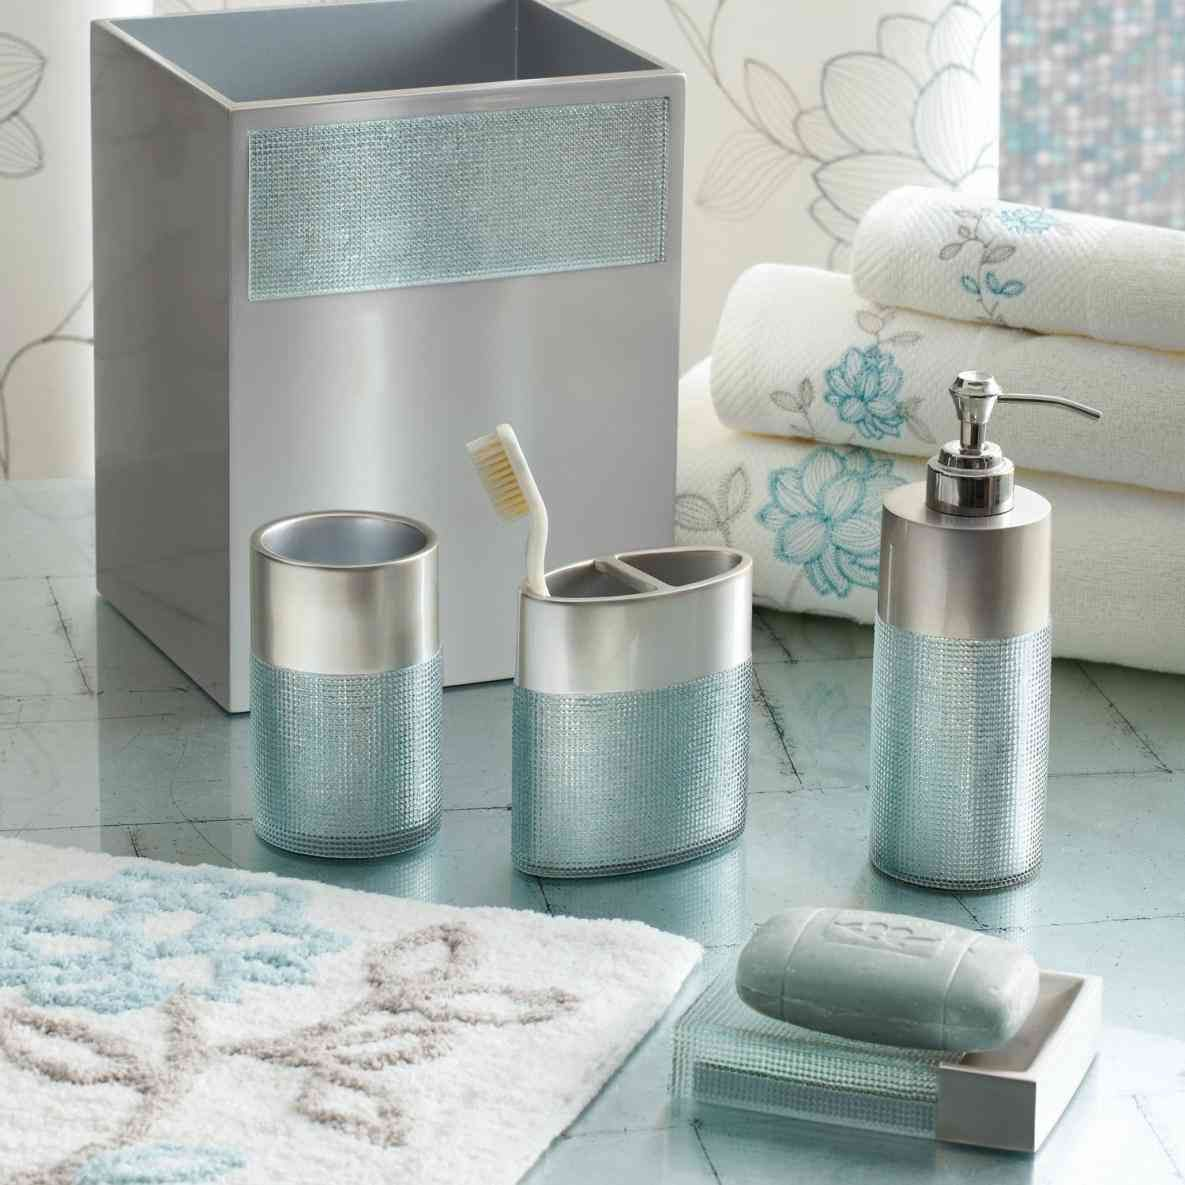 aqua coloured bathroom accessories. New Post Aqua Coloured Bathroom Accessories  LivingRooms